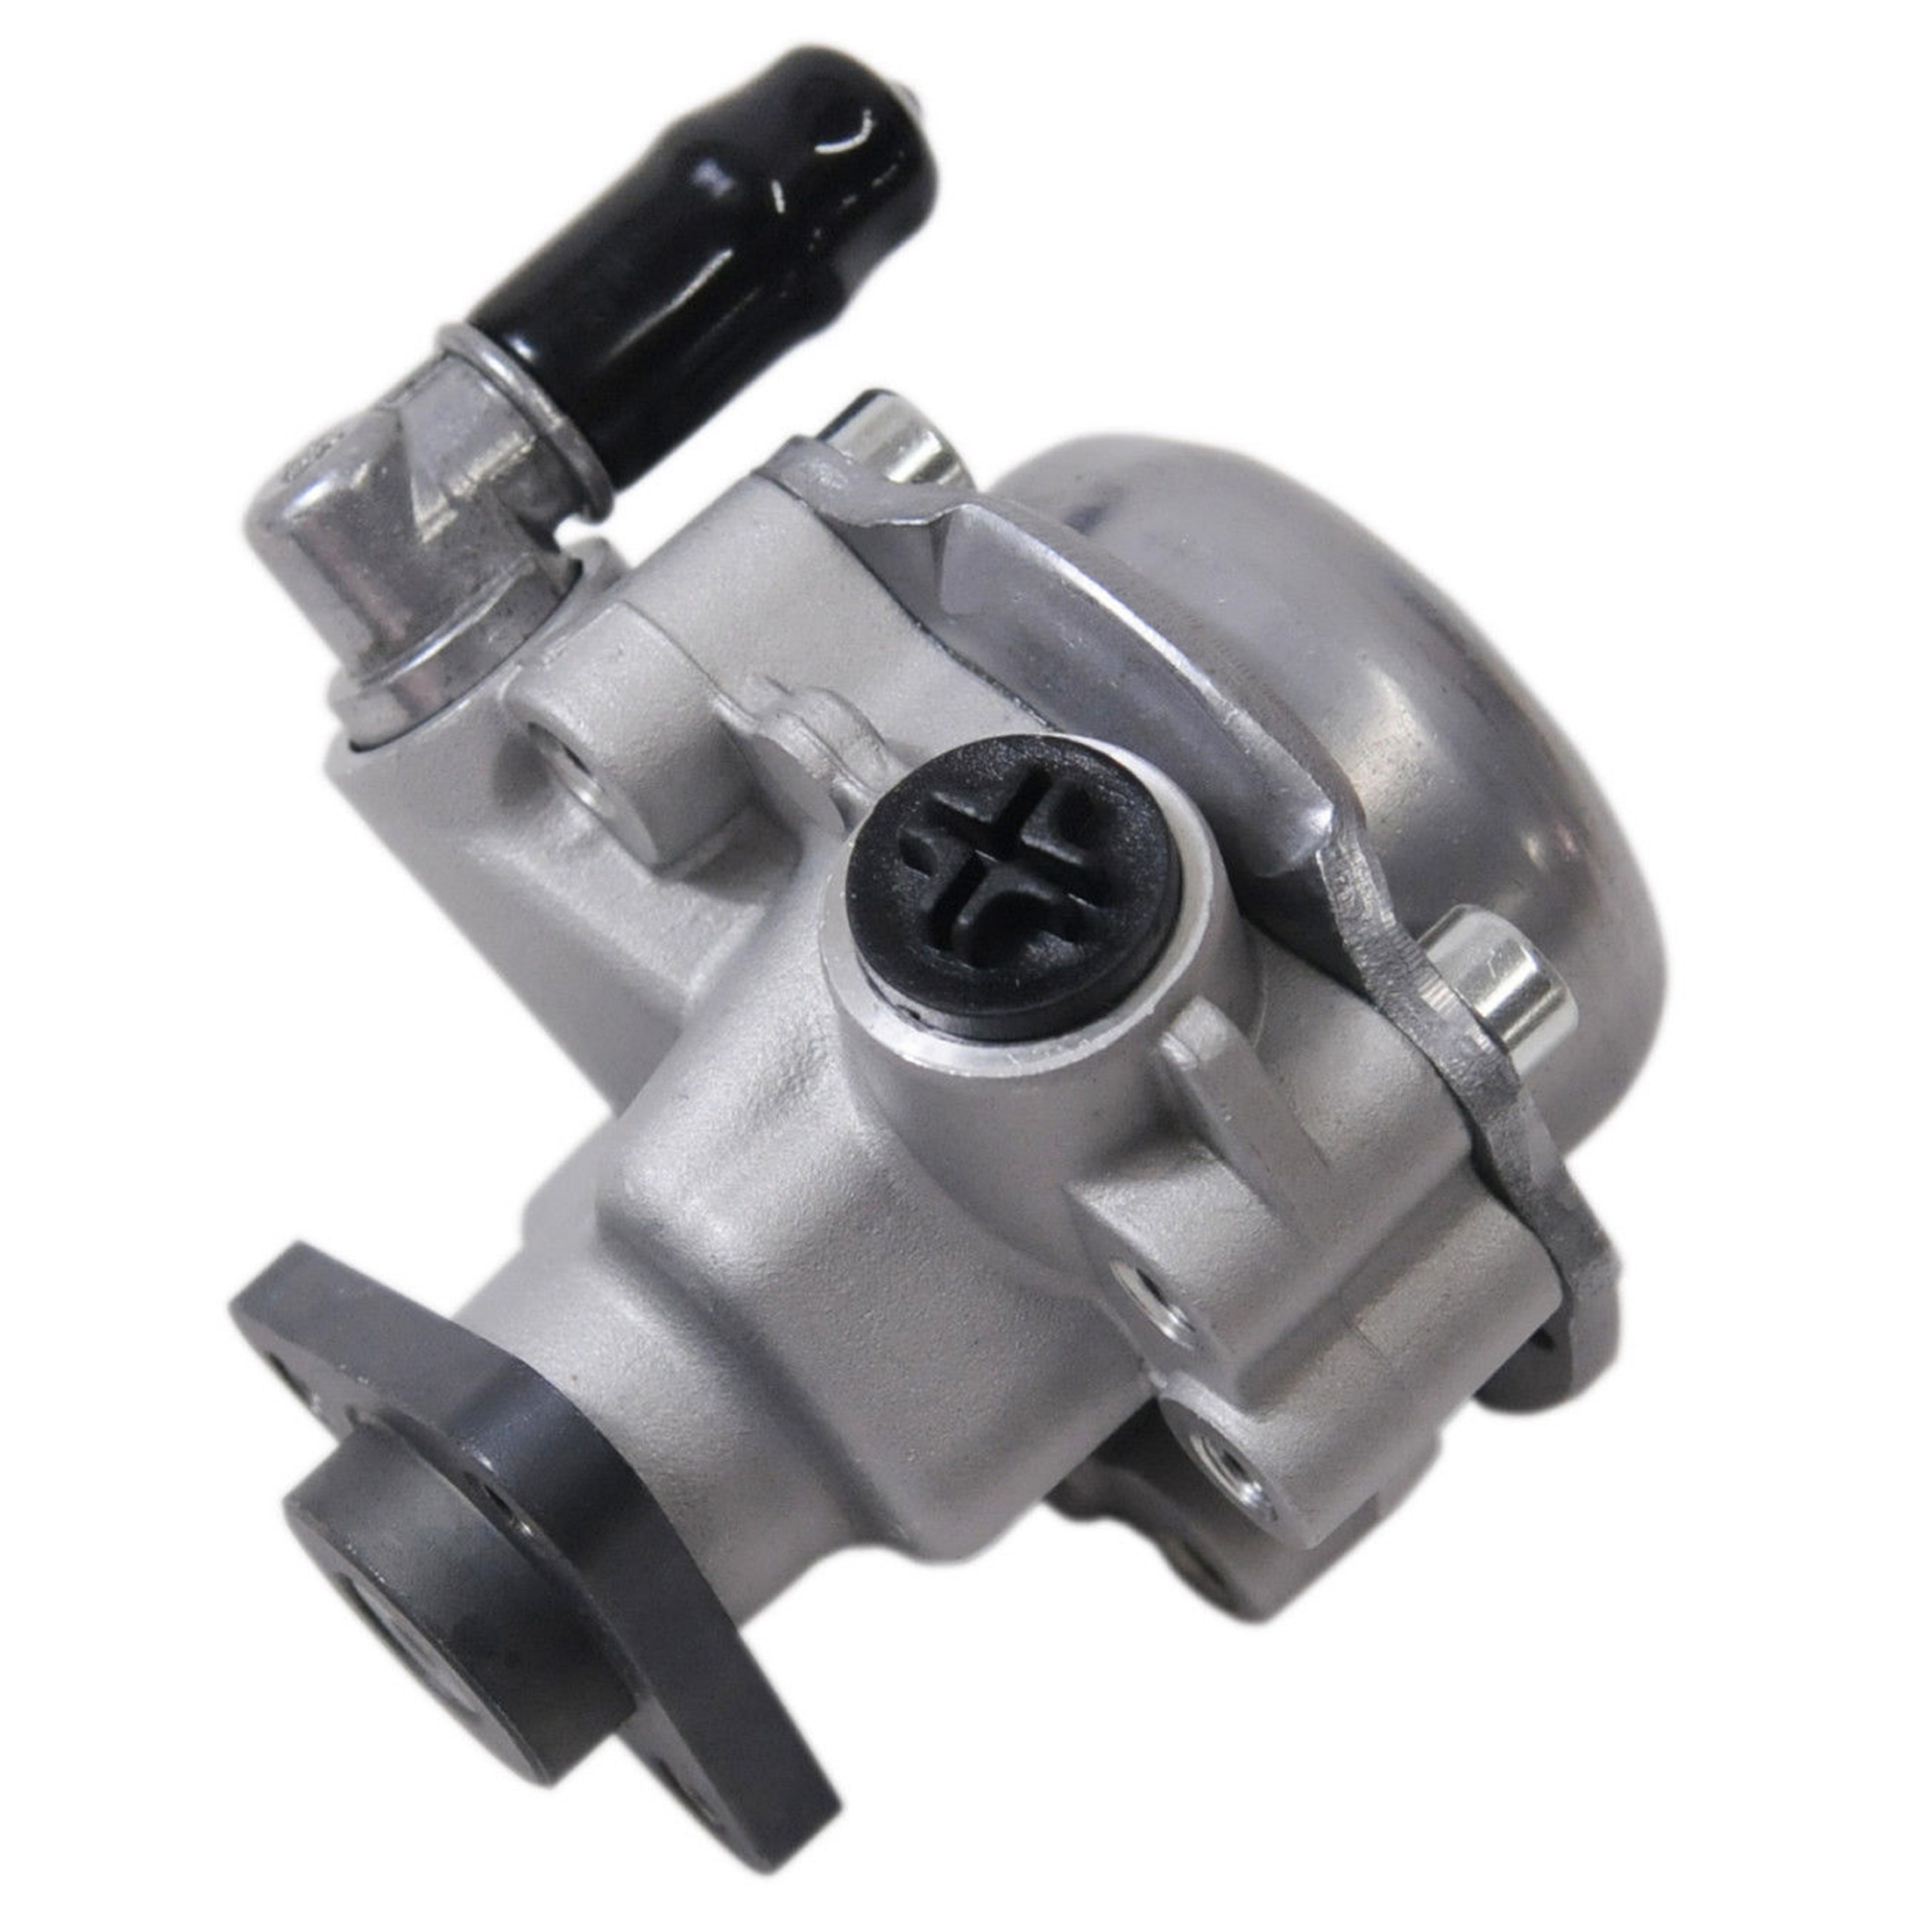 free shipping power steering pump for bmw e46 323i 325i 328ci 330i oe 553 58945 553 59076 55358945 55359076 32416760036 in distributors parts from  [ 2205 x 2205 Pixel ]